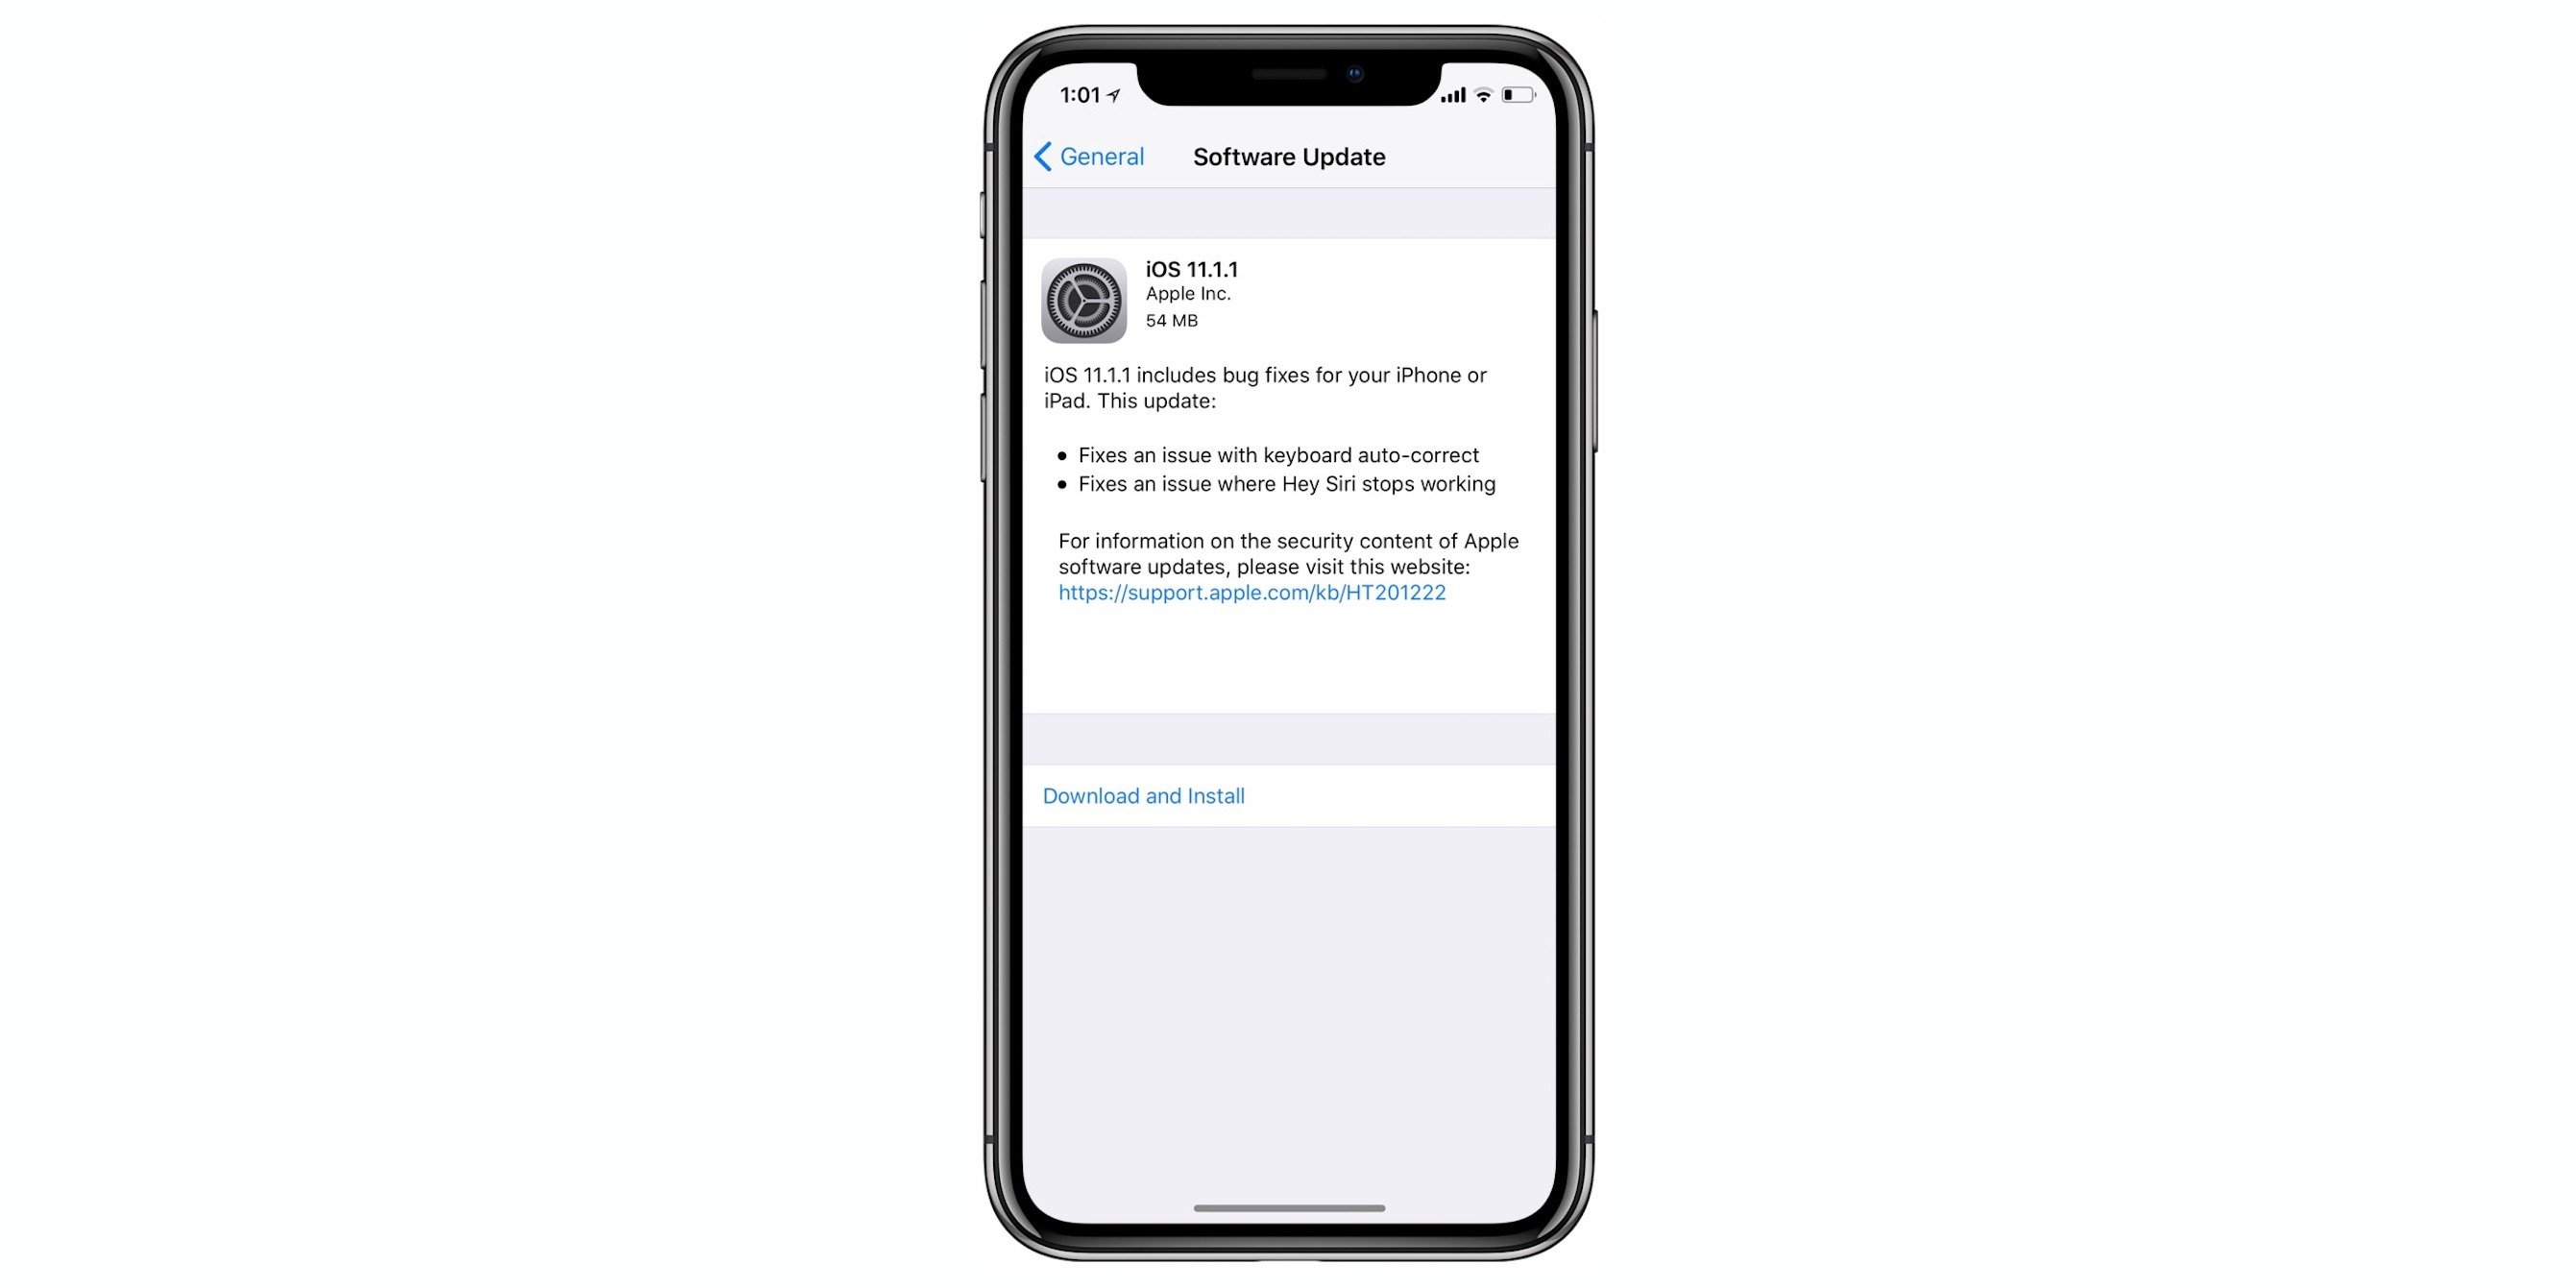 Apple releases iOS 11.1.1 for iPhone and iPad with 'i